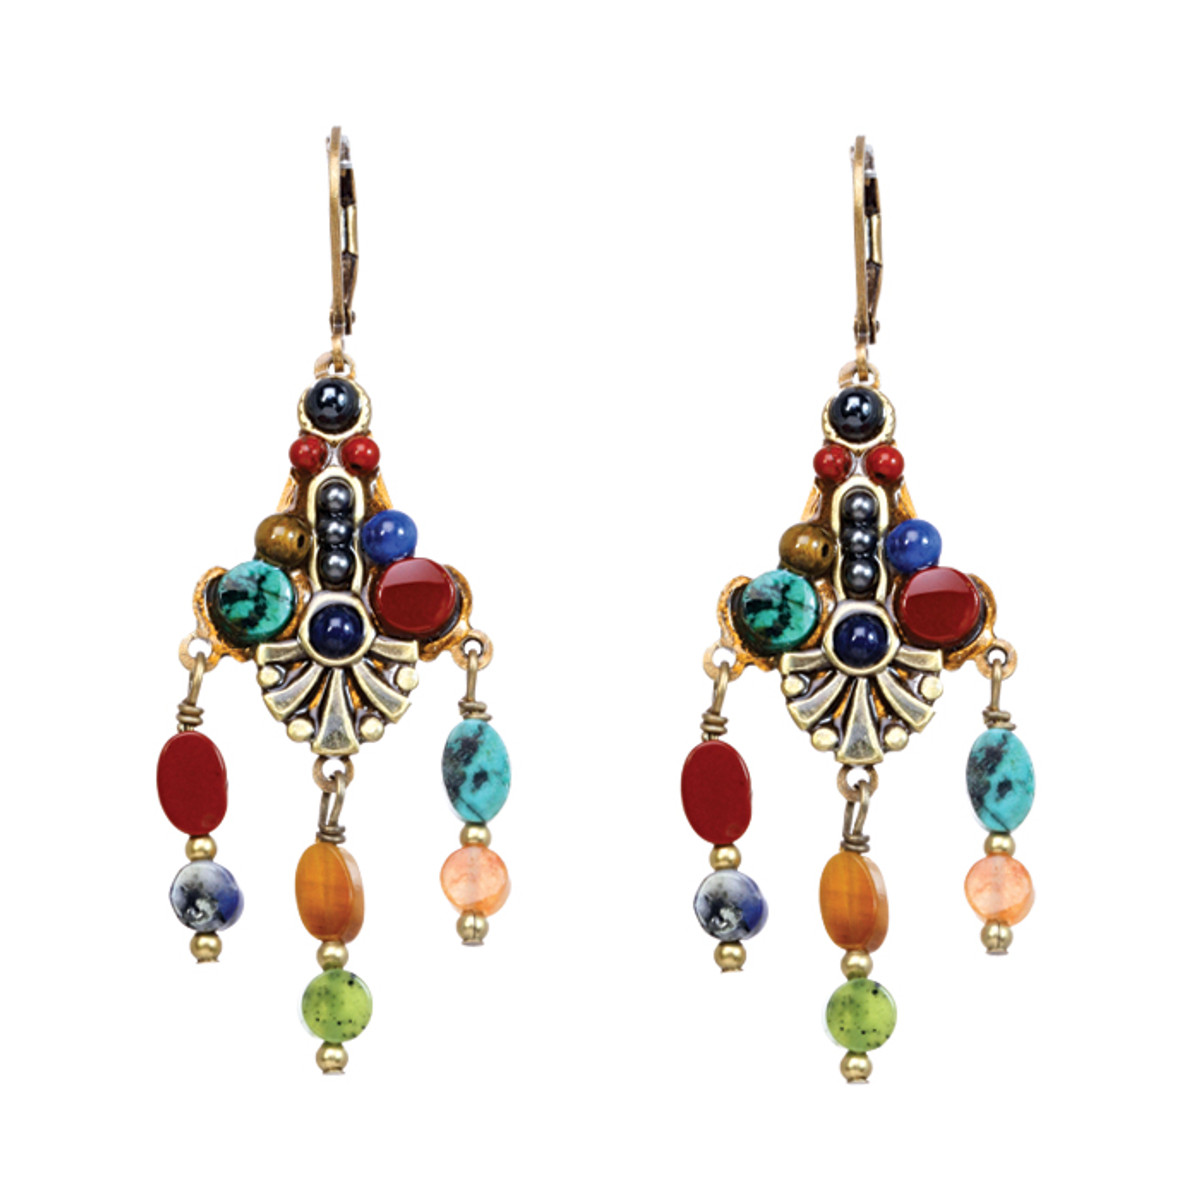 Michal Golan Earrings - Durango 3 Dangles Wire